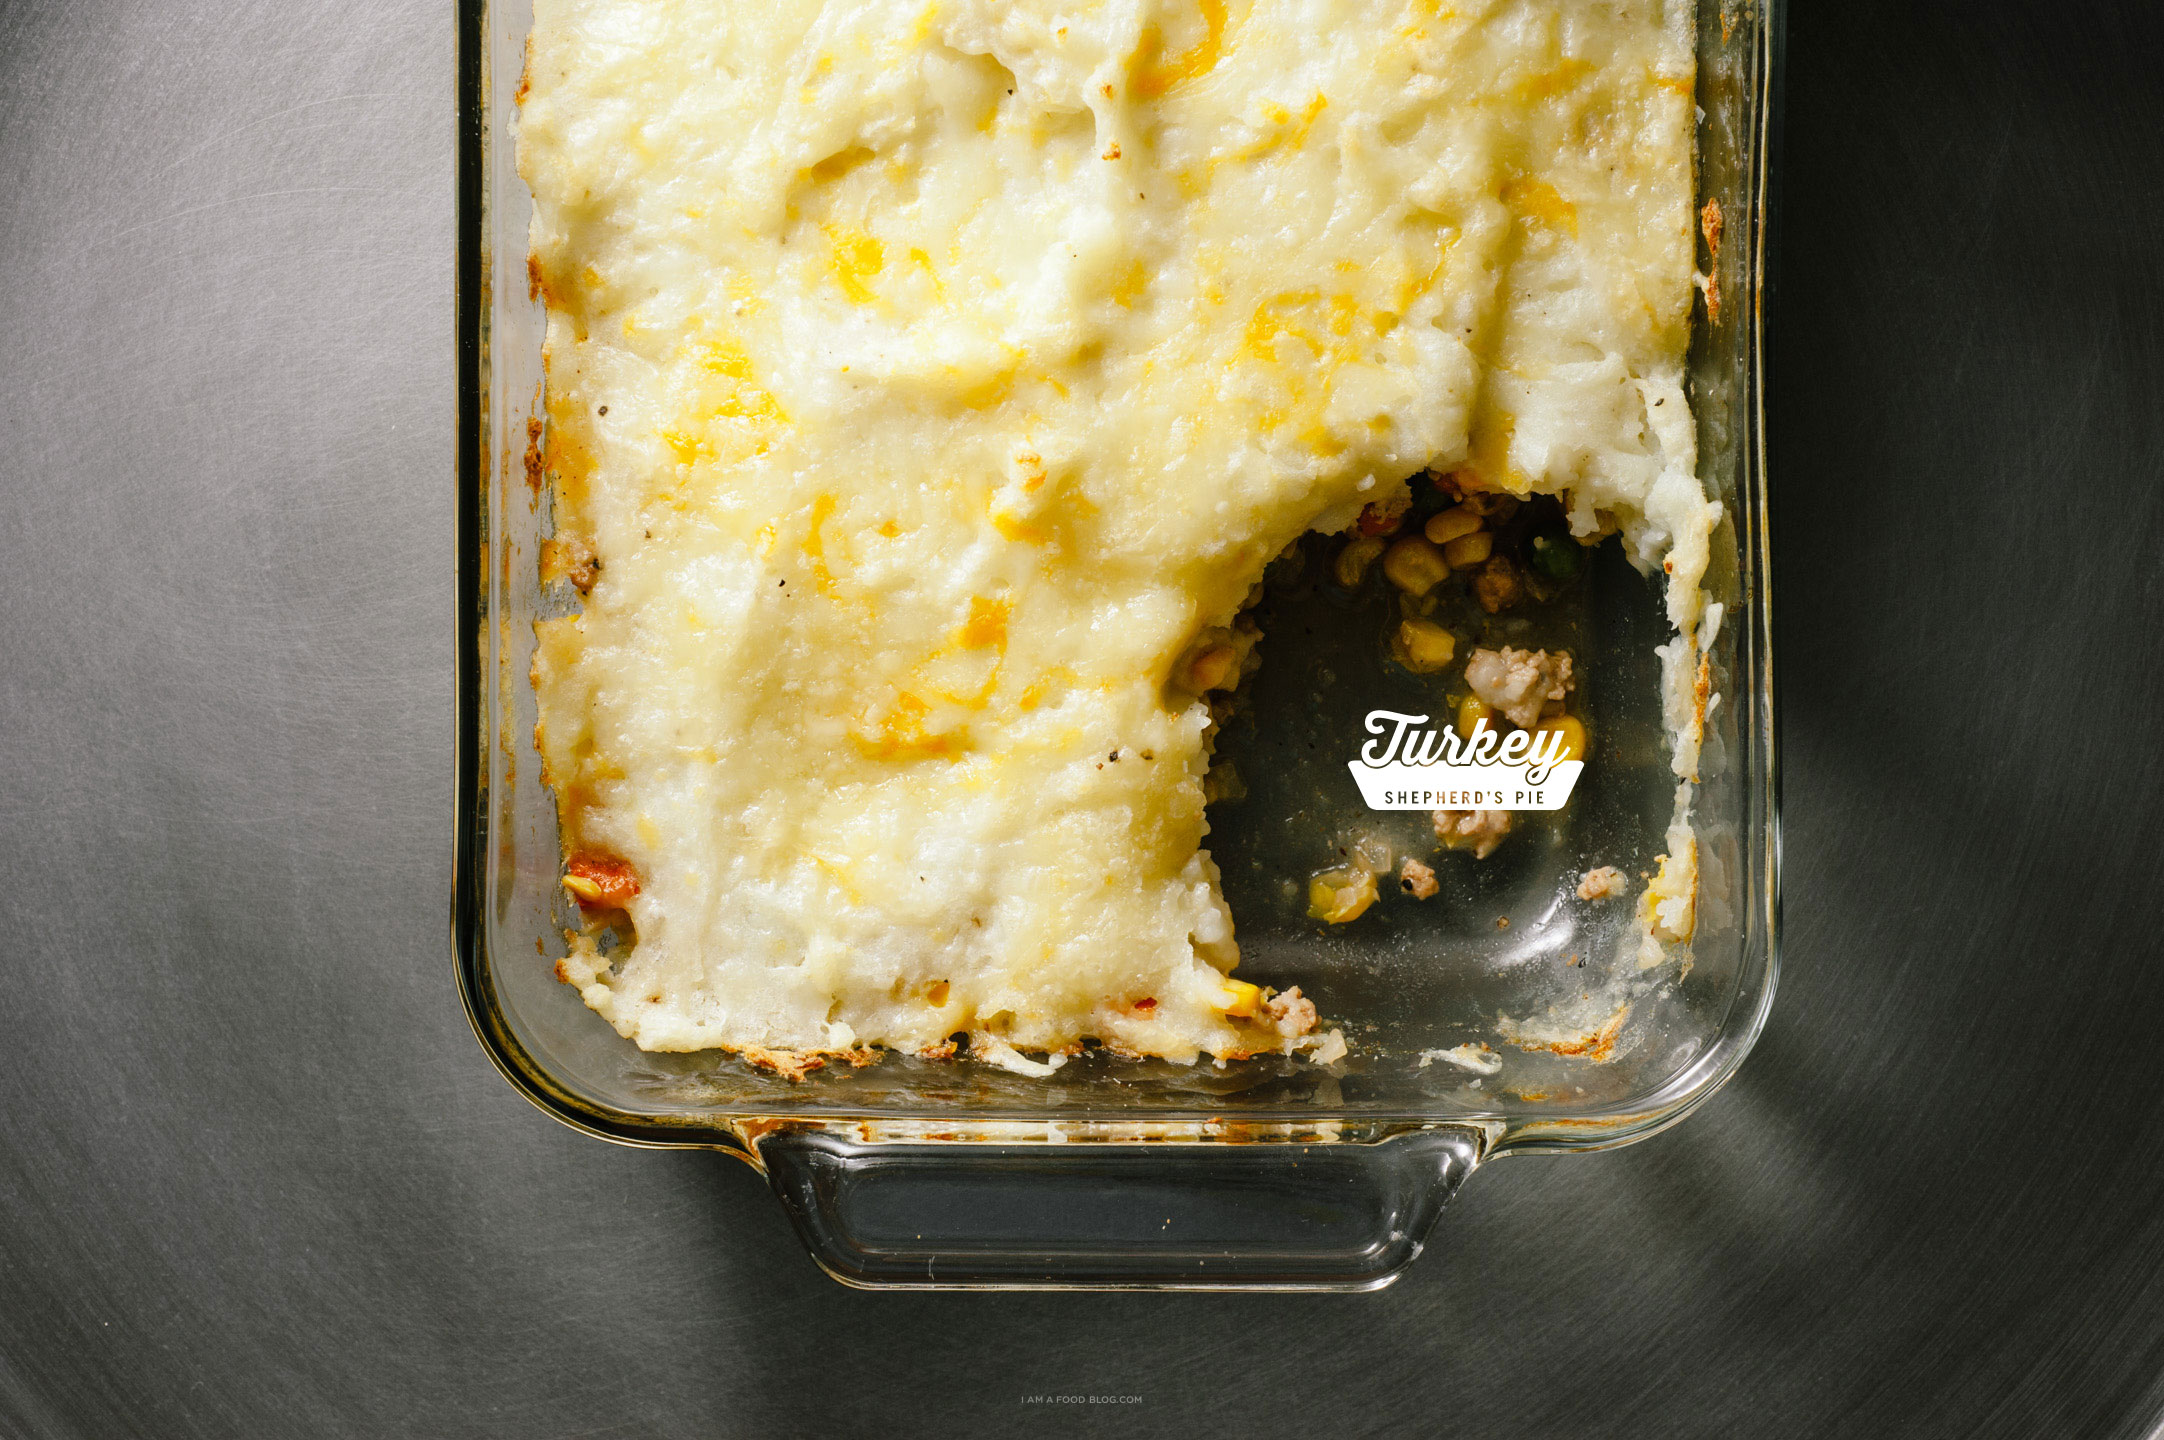 turkey shepherd's pie recipe - www.iamafoodblog.com